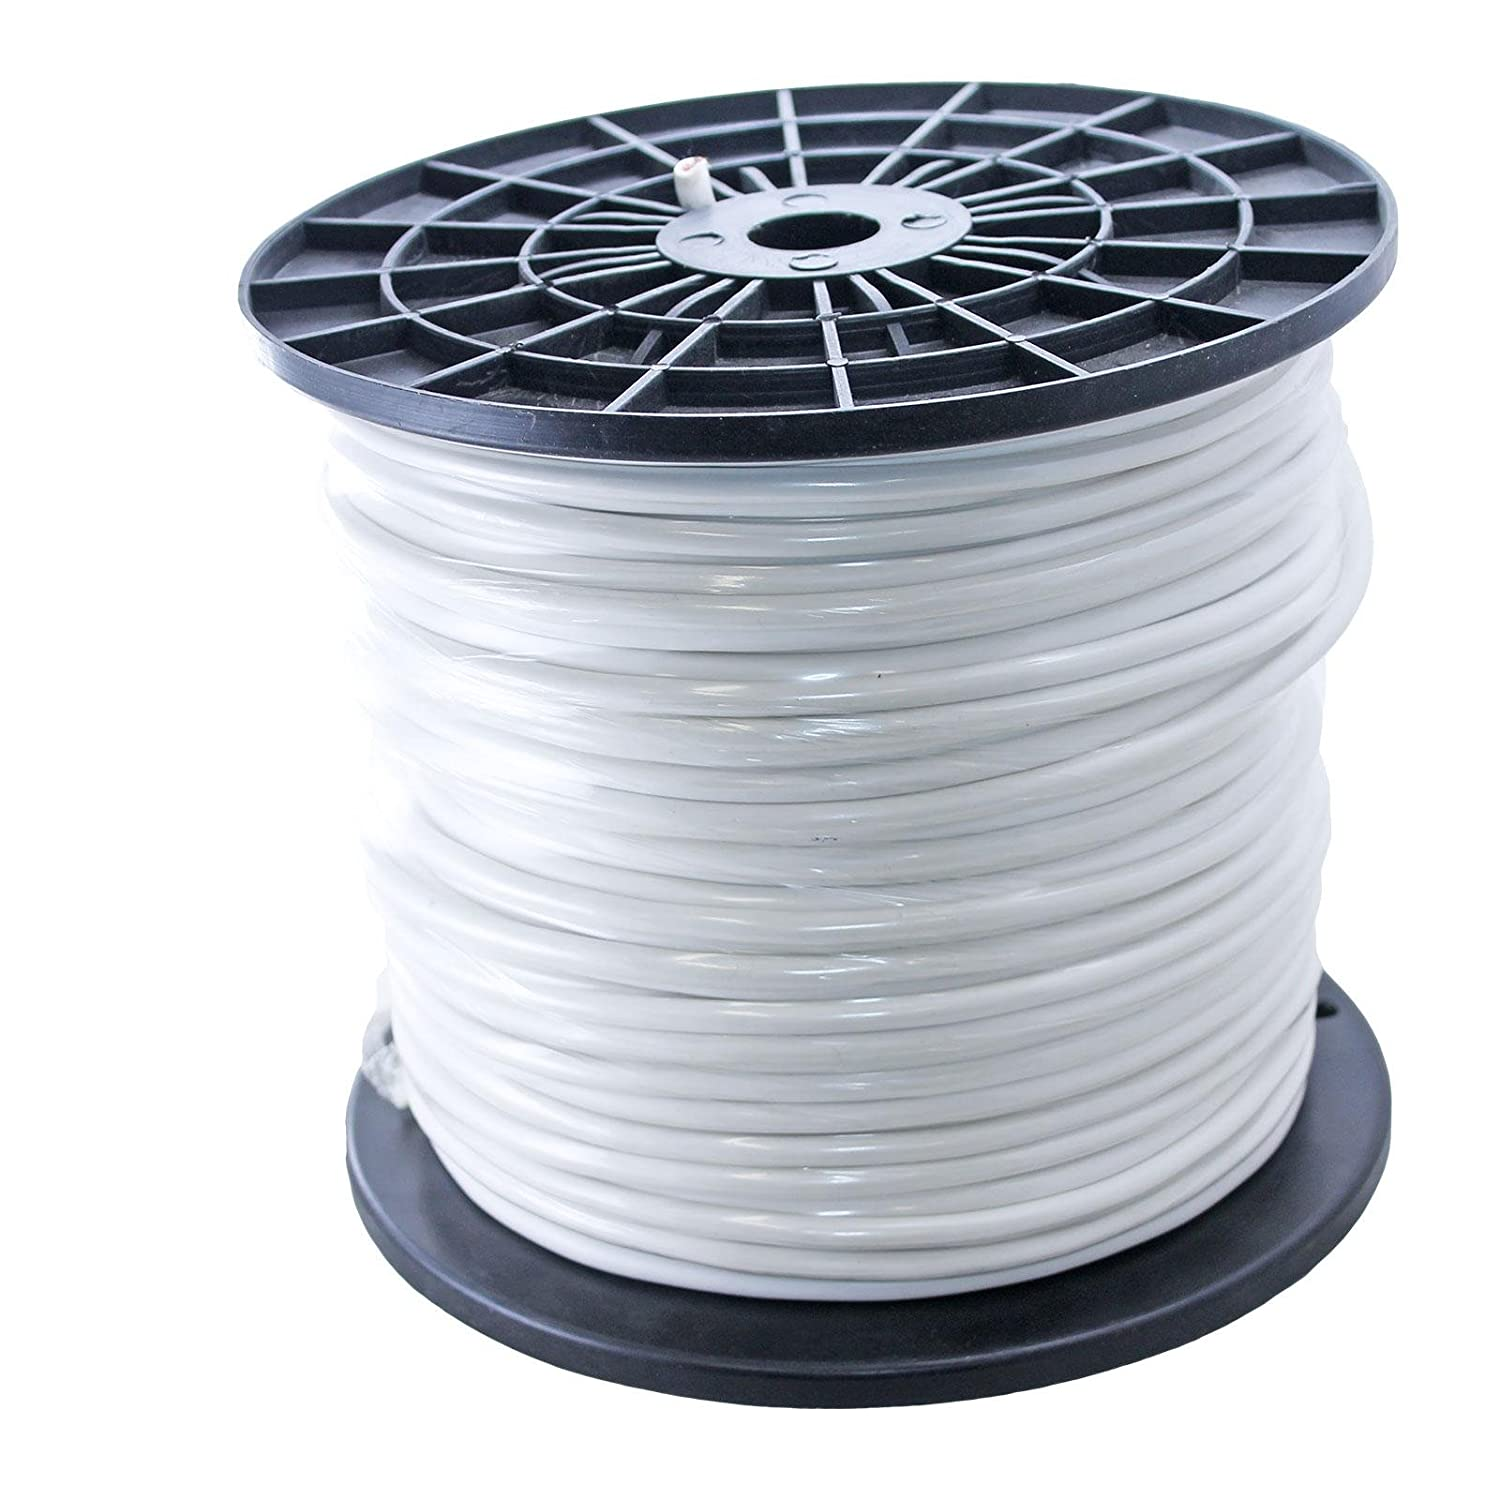 Amazon.com: 500ft Spool of 20awg Balanced Shielded Pro Audio Wire ...